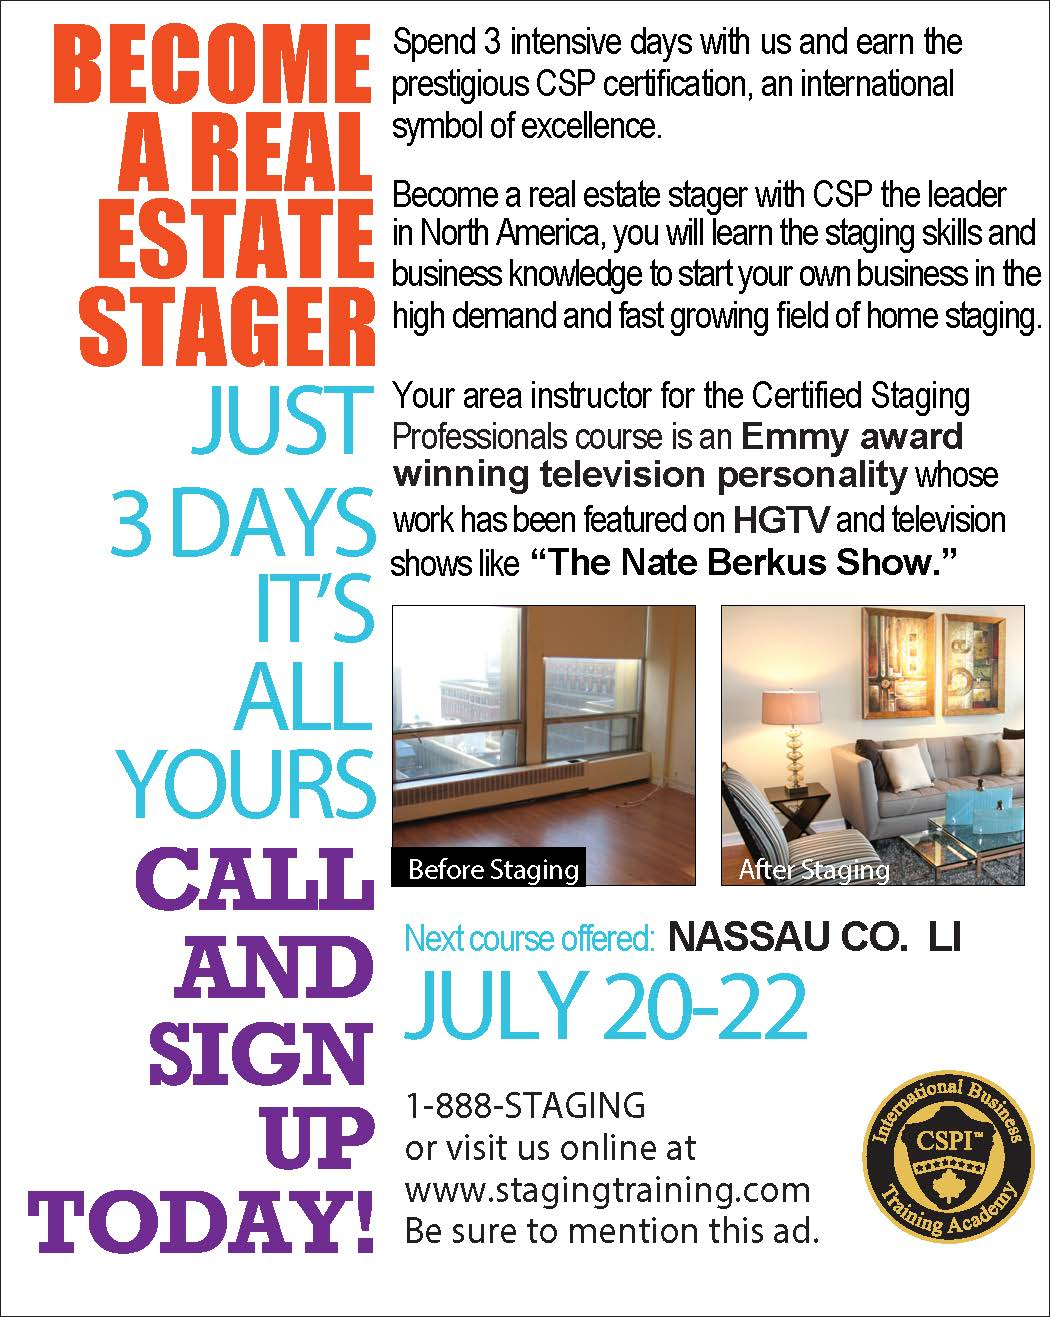 LONG ISLAND NEW YORK HOME STAGING COURSE Certified Staging Professionals 3 Day Certification Course July 20 22 2013